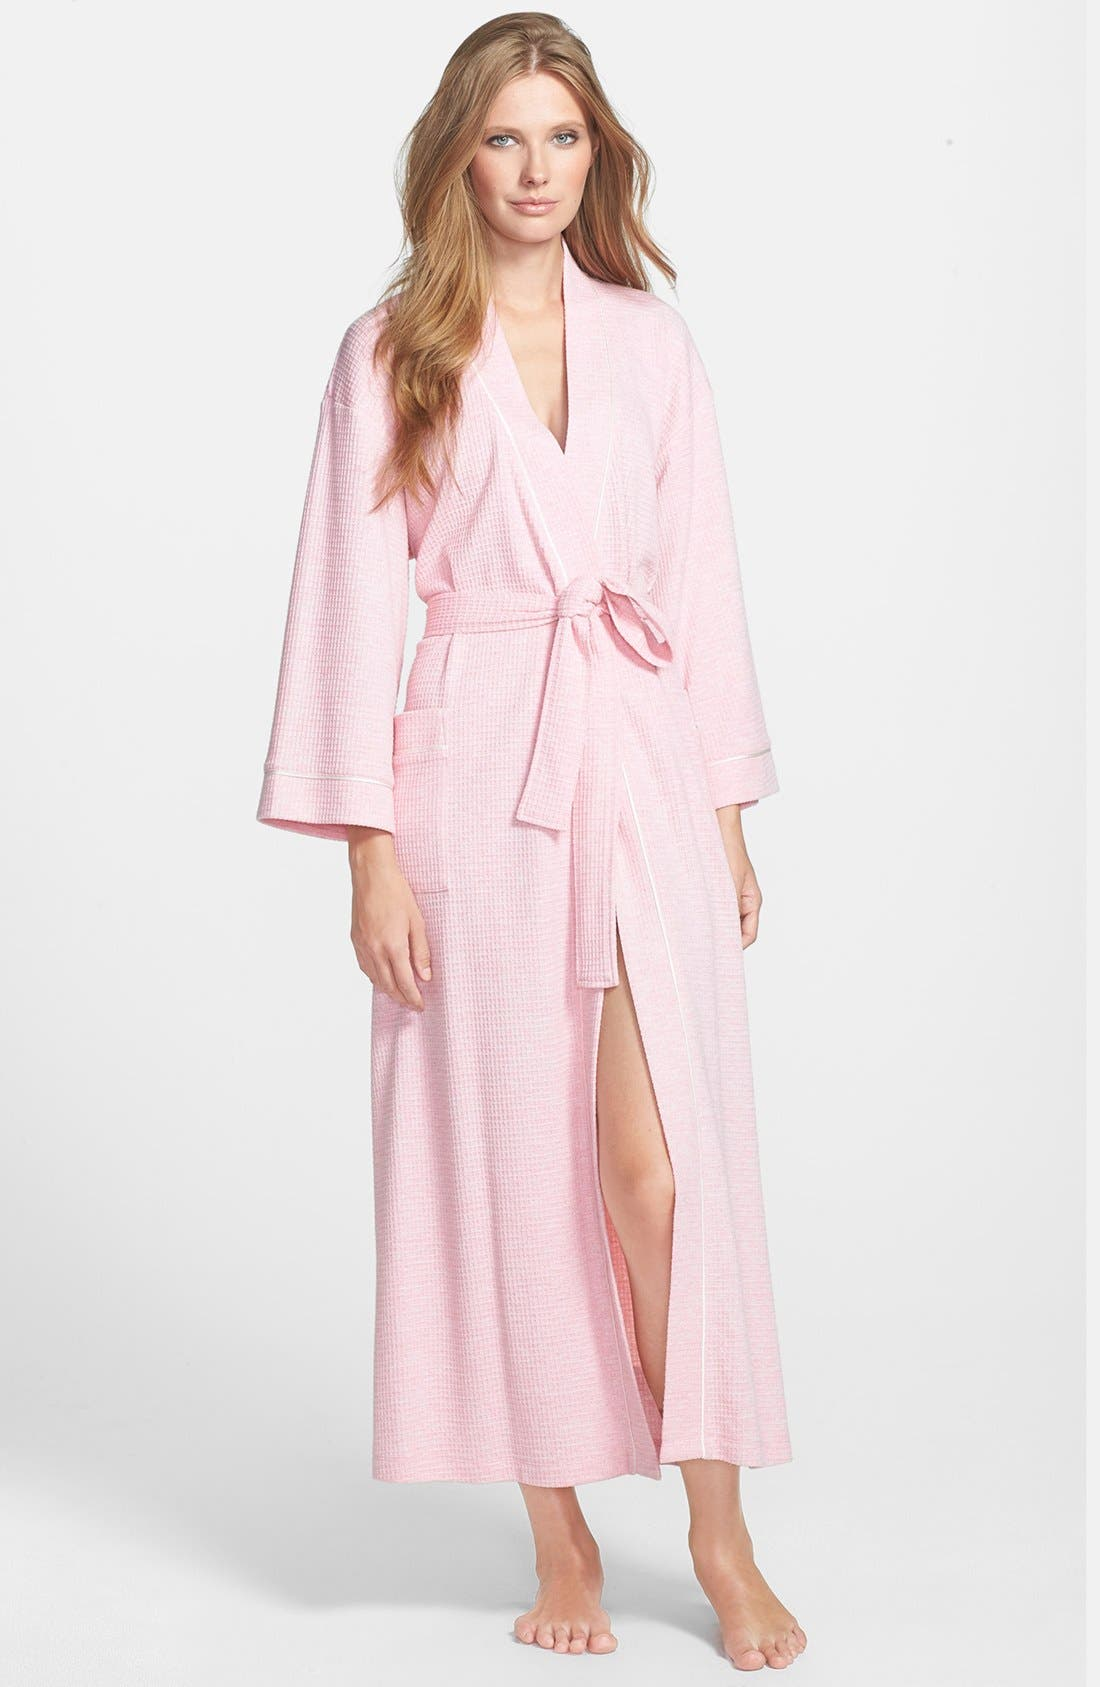 Main Image - Carole Hochman Designs 'Blown Away' Robe